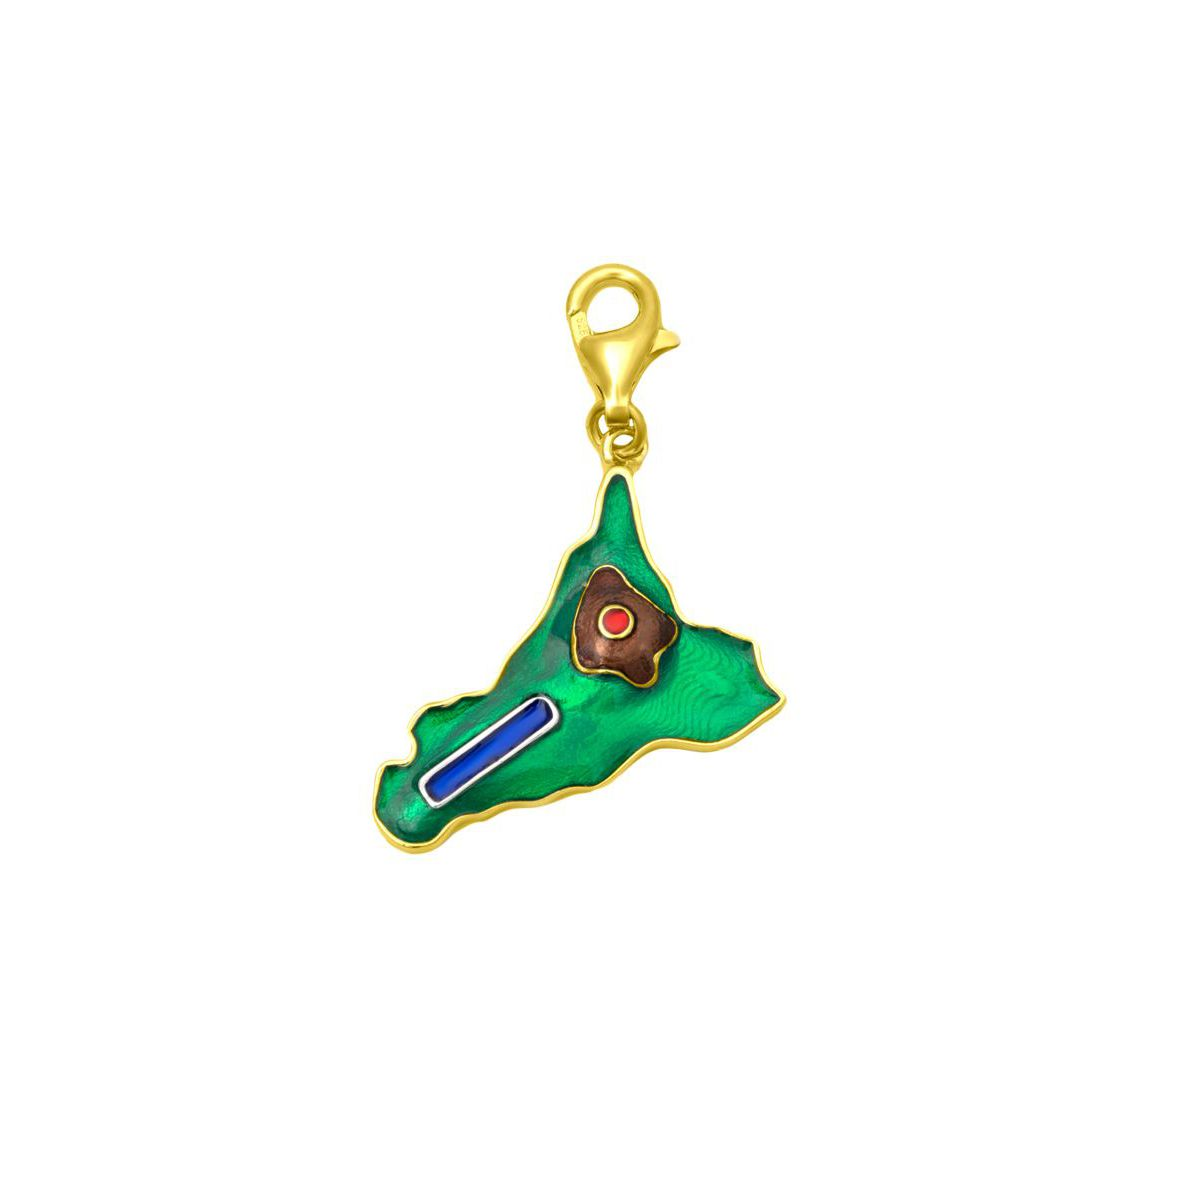 SICILY NAIL GOLD CHARM Green M'AMI SICILY JEWELS